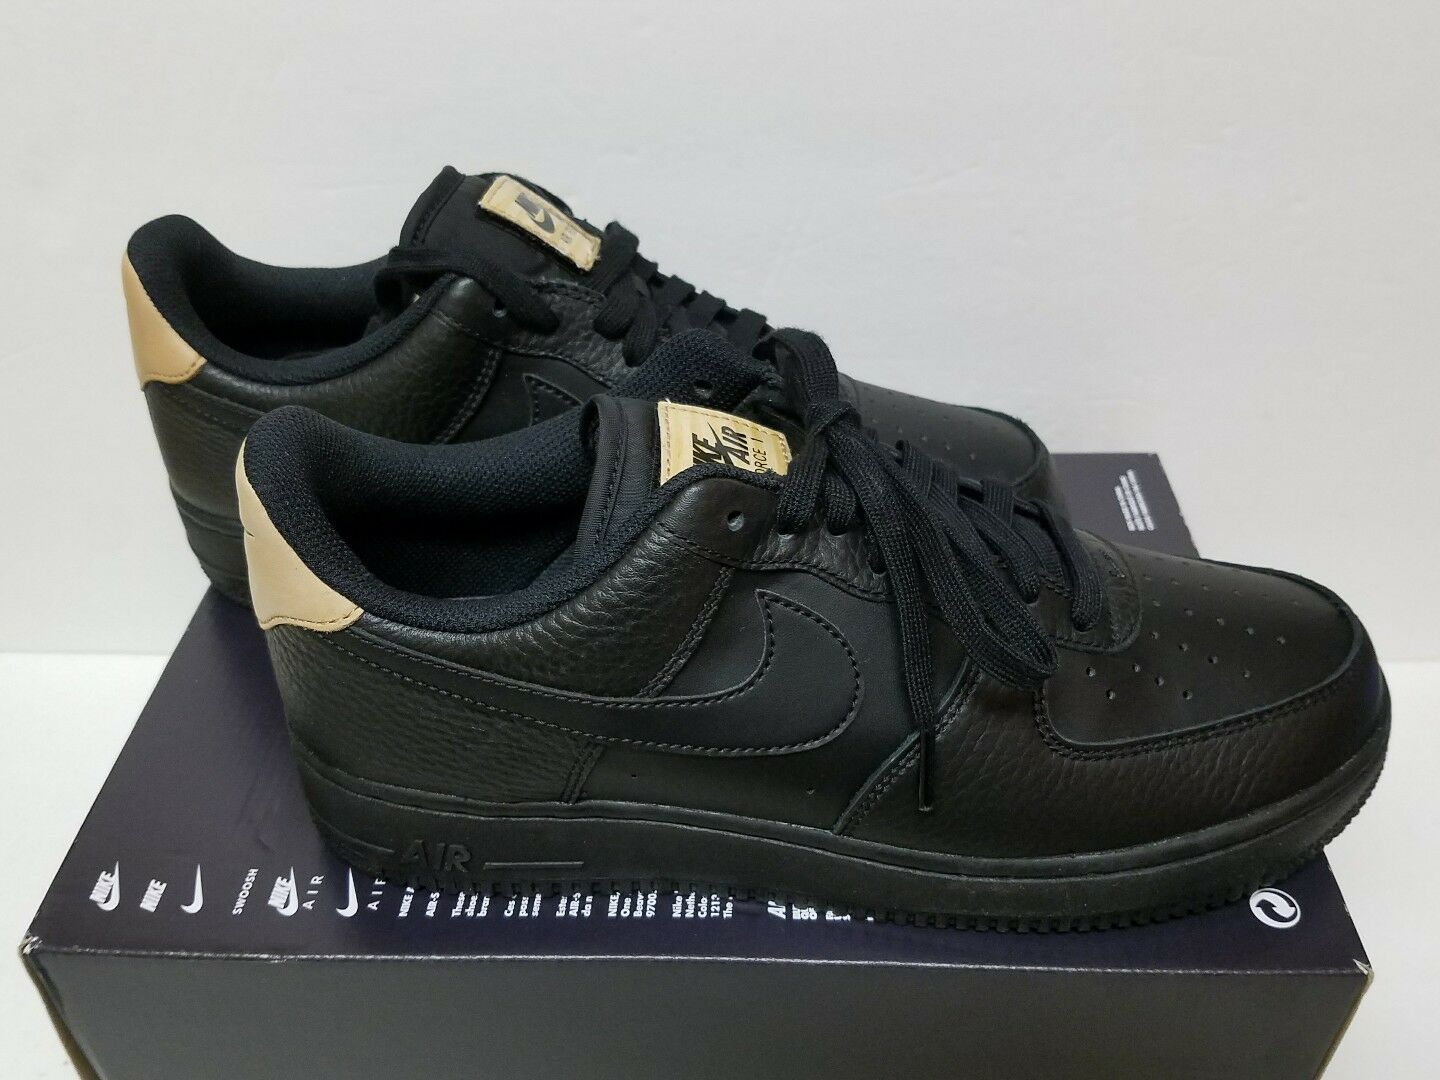 best-selling model of the brand Nike Air Force 1 '07 LV8 Comfortable